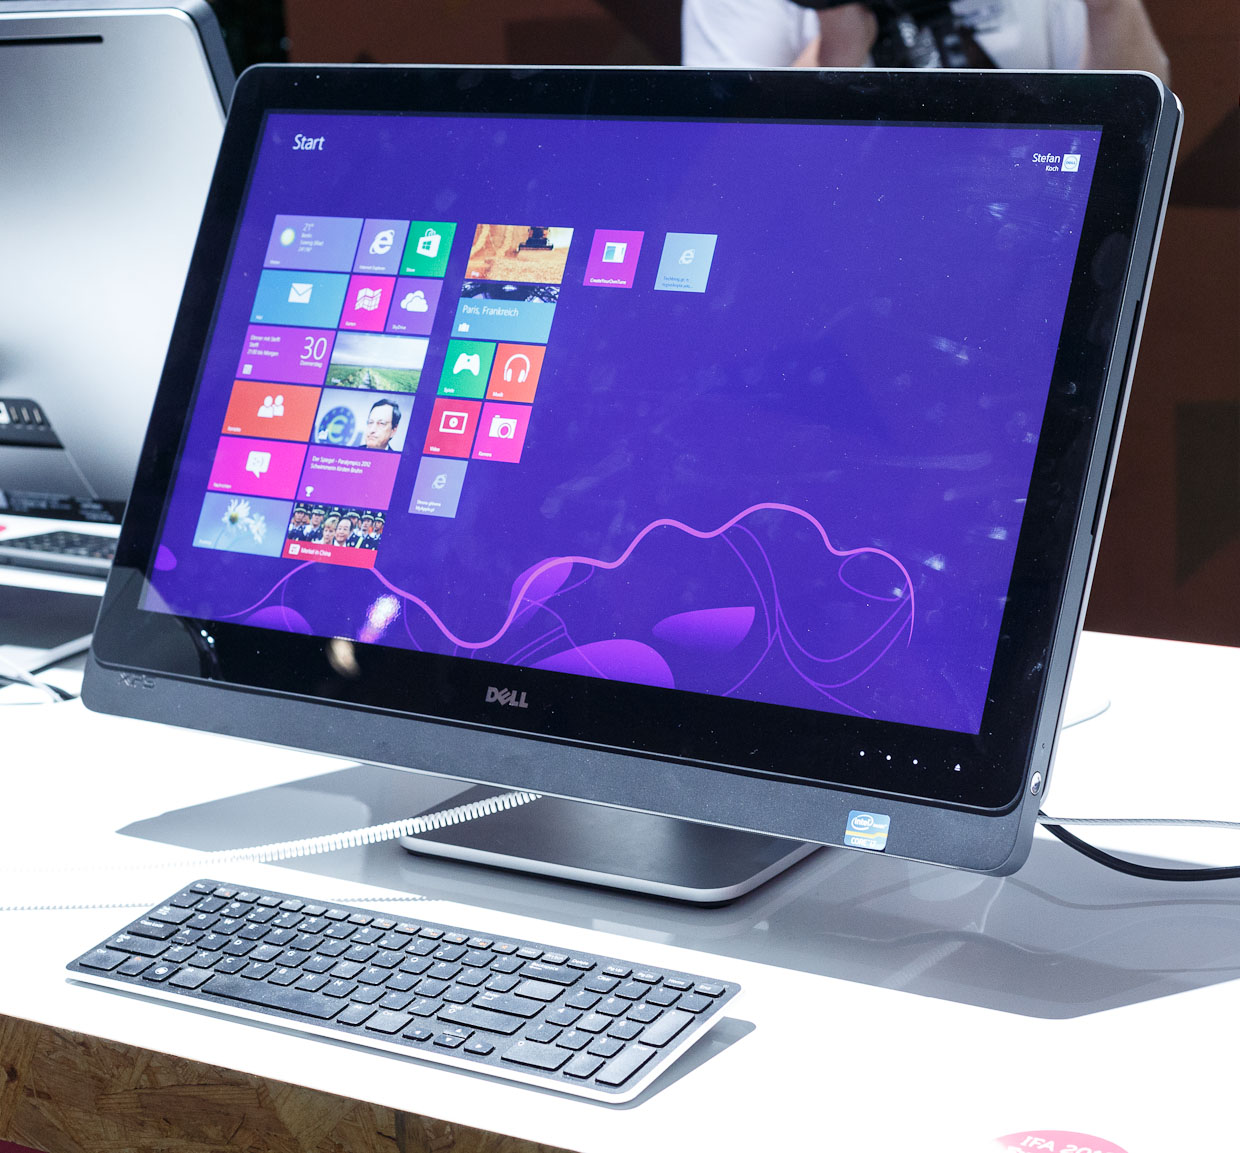 The Dell XPS One 27 touch screen can be used with a conventional keyboard like a normal all-in-one machine, or it can be tilted closer to flat for easier touch-screen operation.